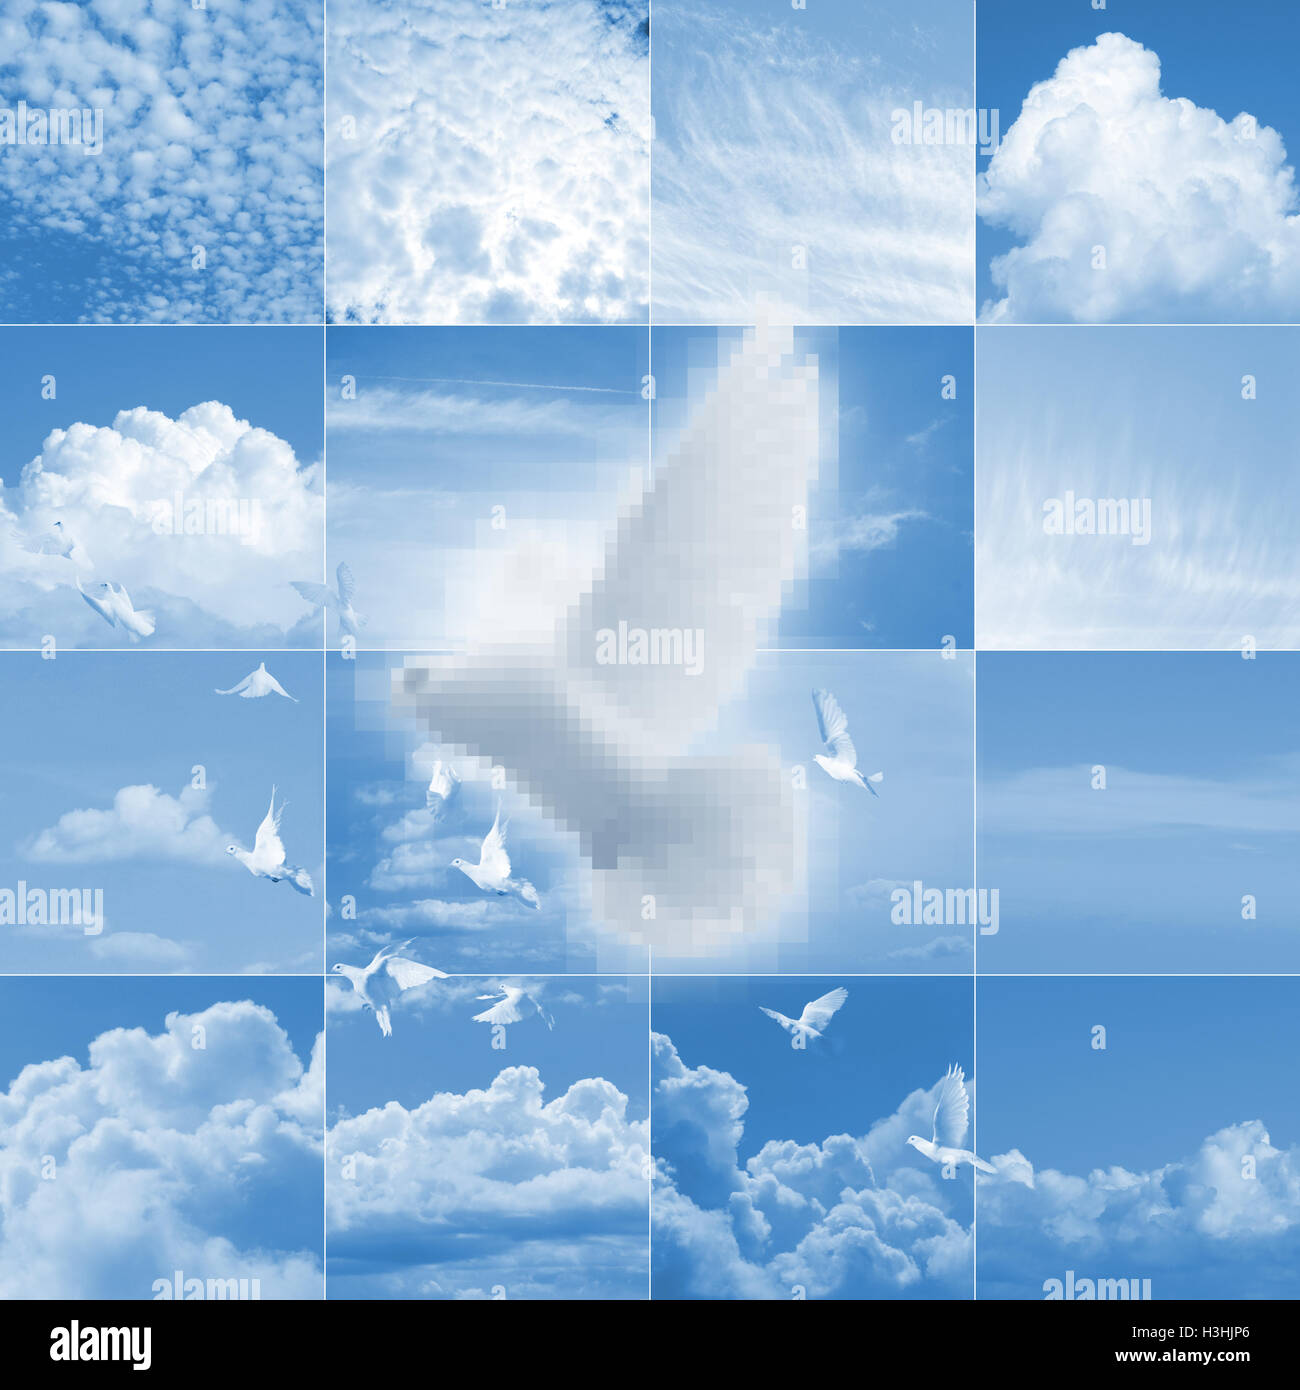 A pixelated white dove is flying over various photographed cloud shapes mosaic. - Stock Image